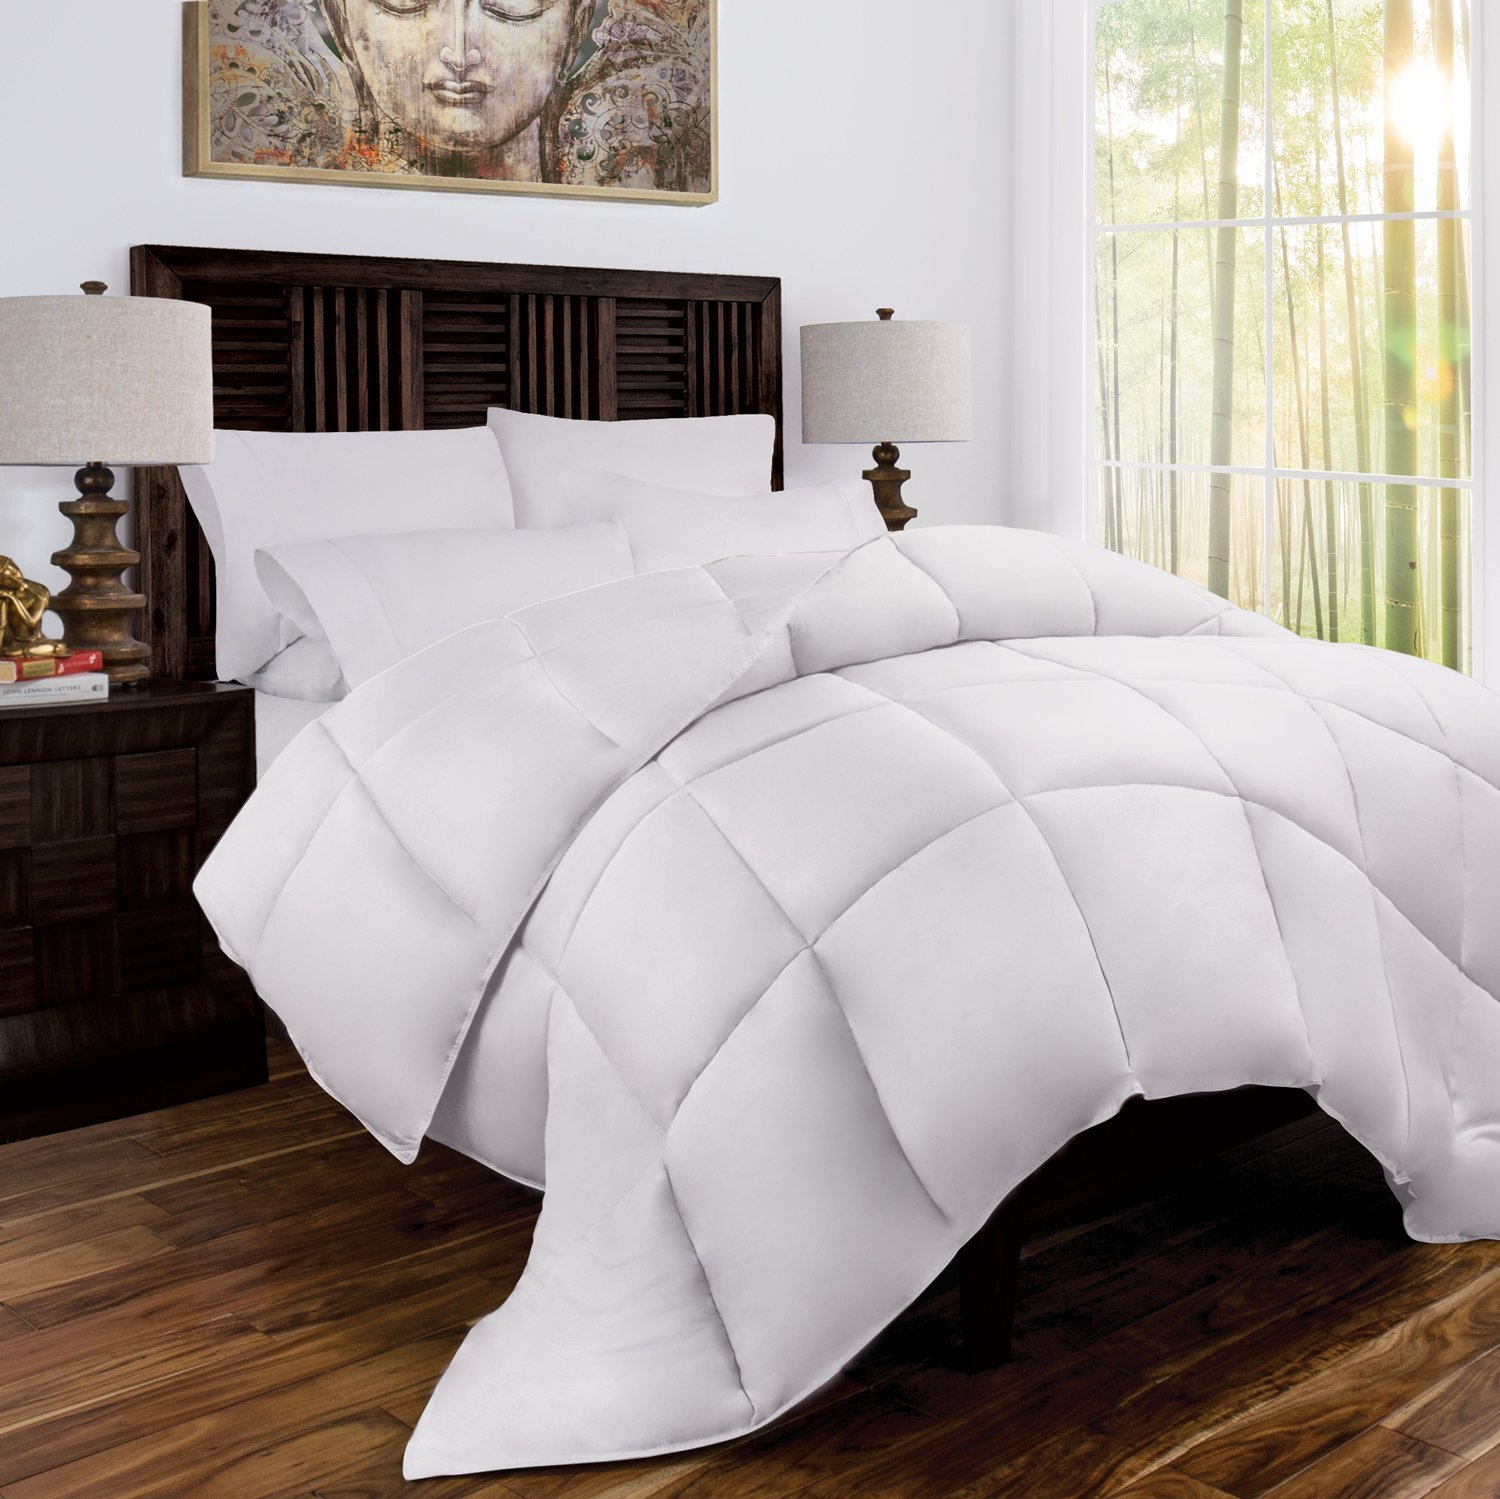 by cover x ratings full comforters insert xl reviews jan alternative twin cheap non lightweight white guide of i best review very restoration sleep tradition comforter king duck target blanket royal can where size ikea quilt duvets summer duvet weight down california buy